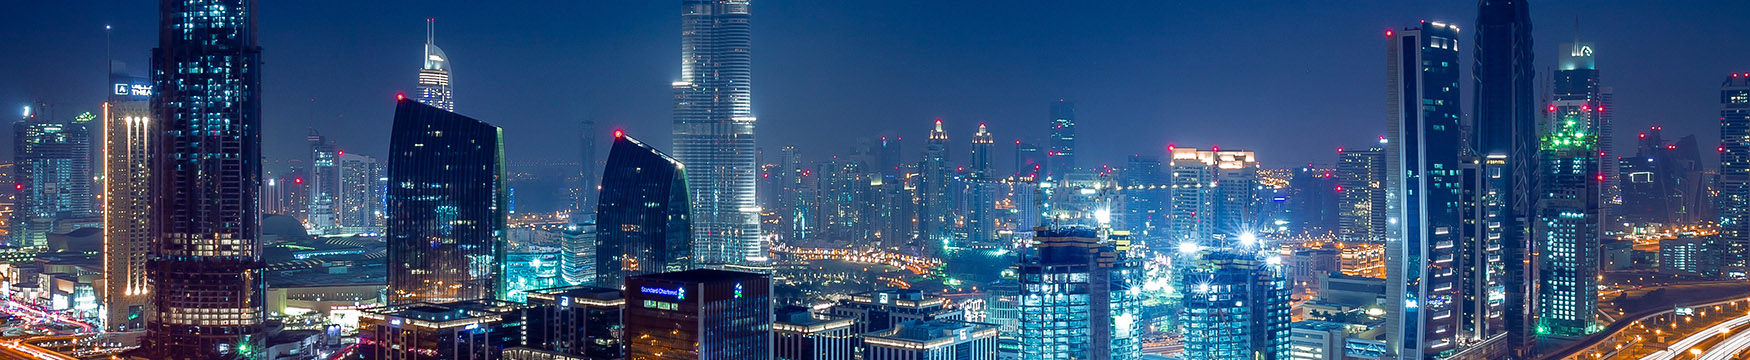 GALLERY_004_stock-photo-dubai-city-lights-127913749